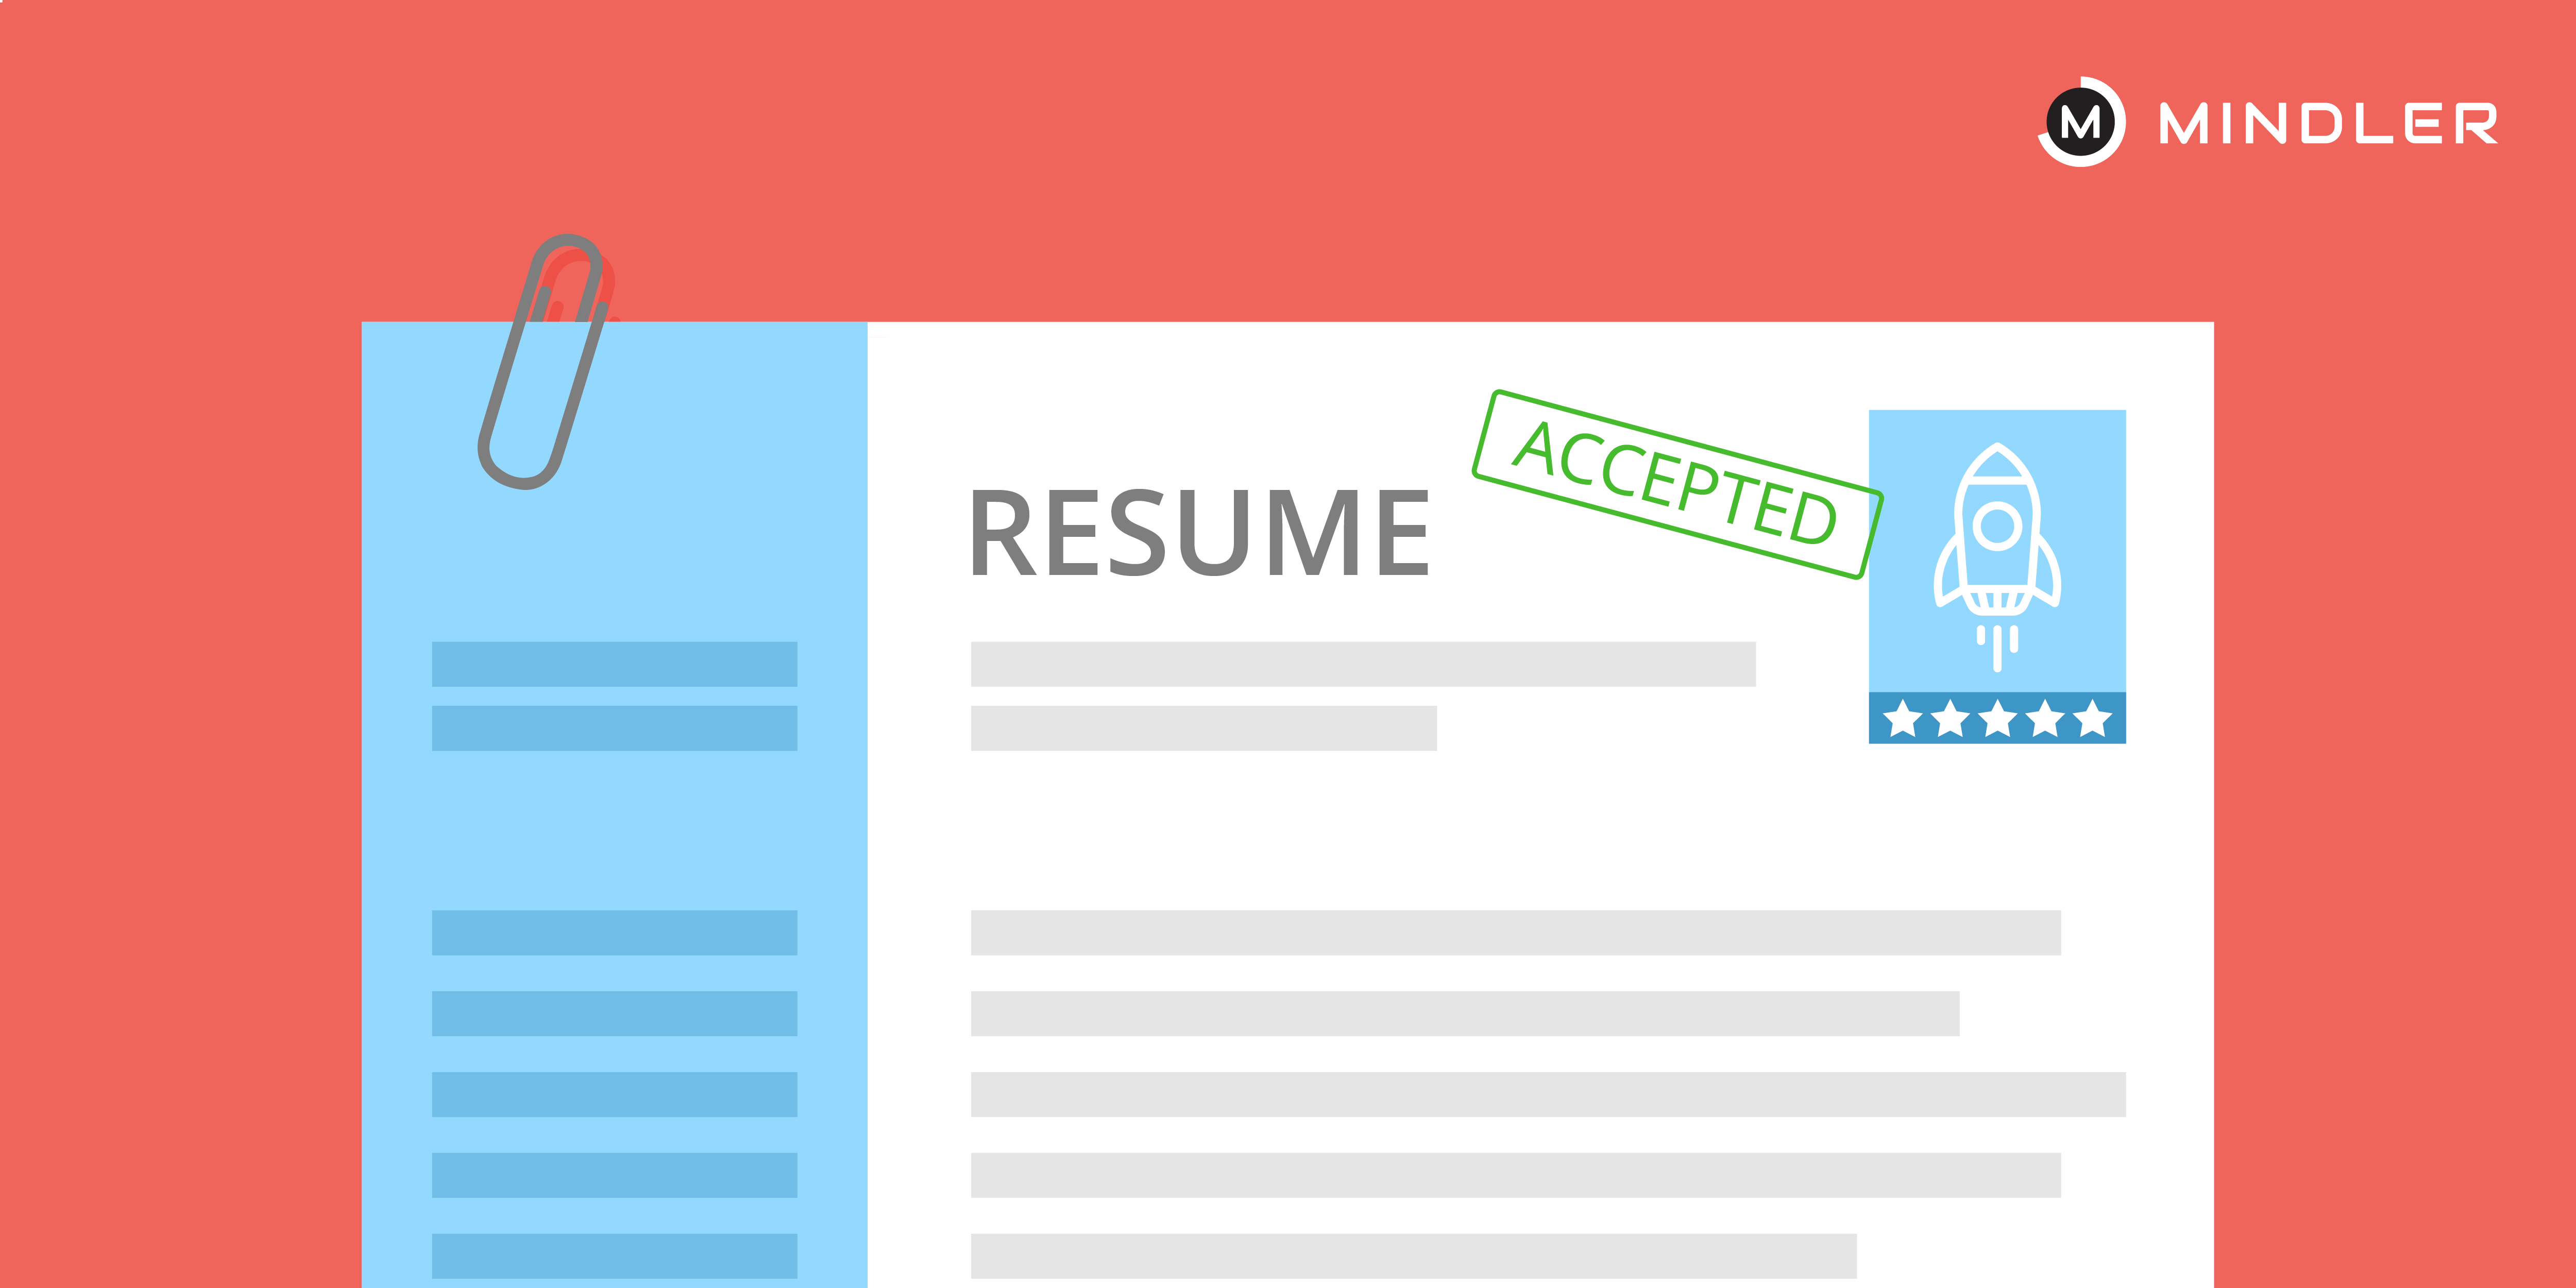 Resume For Freshers 24 Expert Tips To Build A Winning Resume